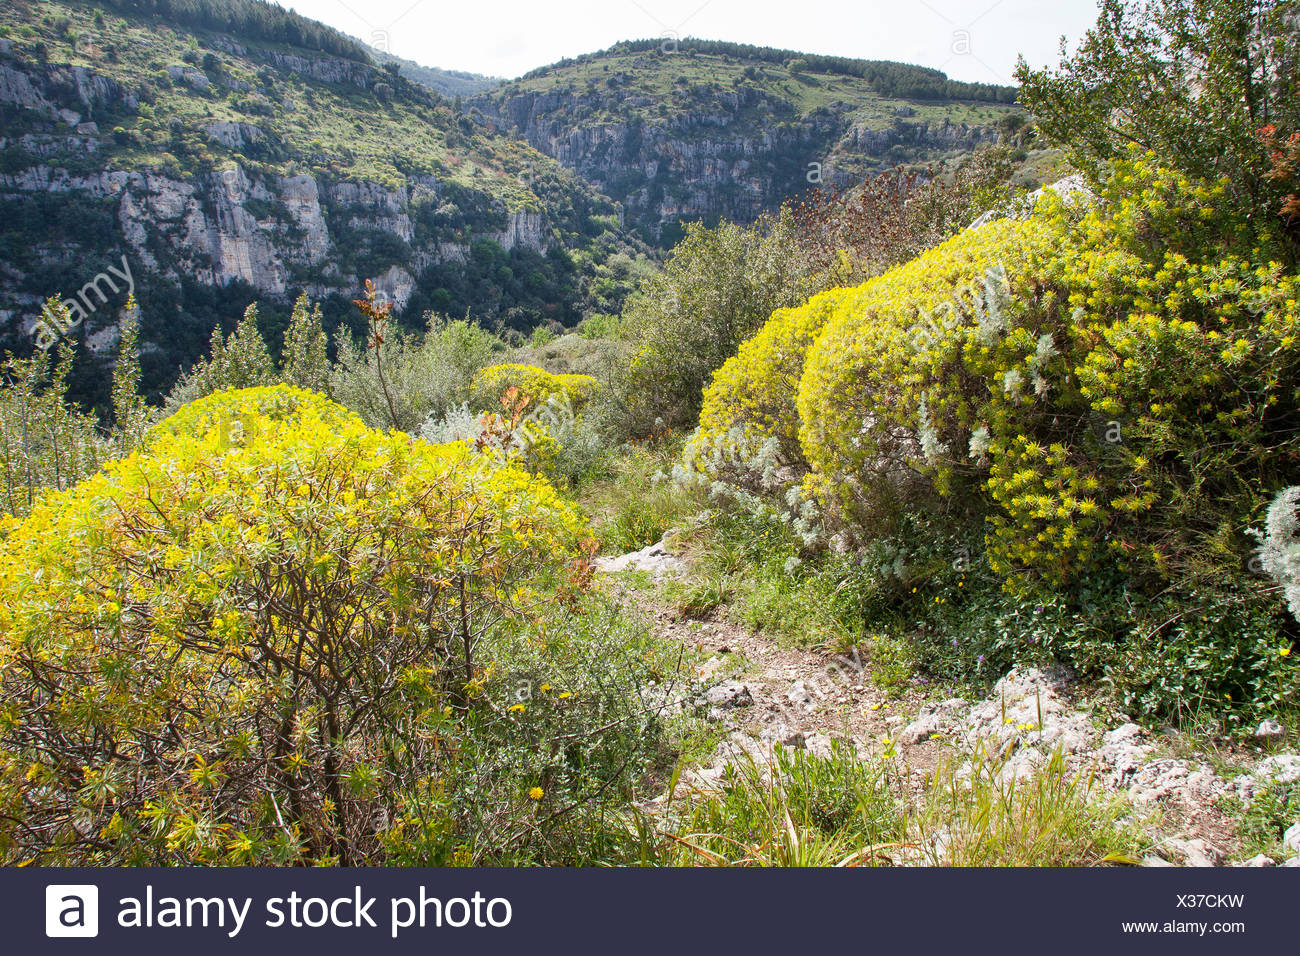 Woody Spurge (Euphorbia dendroides), in a maquis beneath a rockwall, Italy, Sicilia - Stock Image